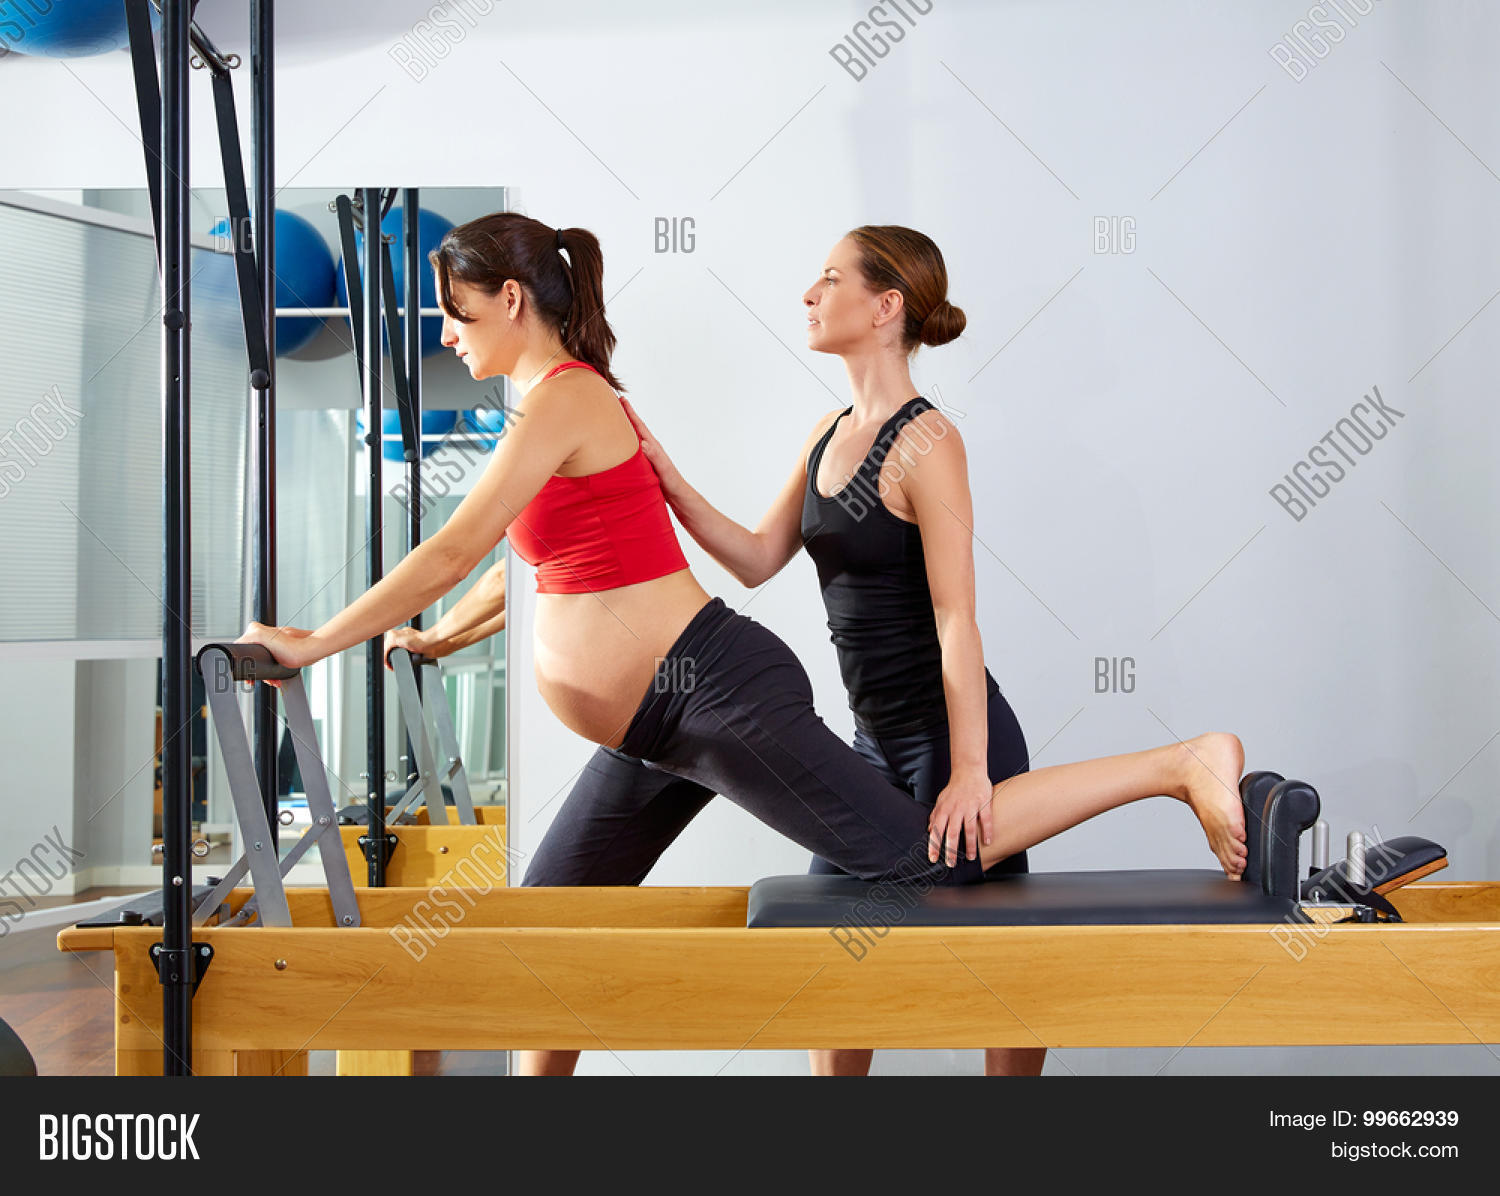 Pregnant Woman Pilates Reformer Cadillac Exercise Workout With Personal Trainer 99662939 Image Stock Photo